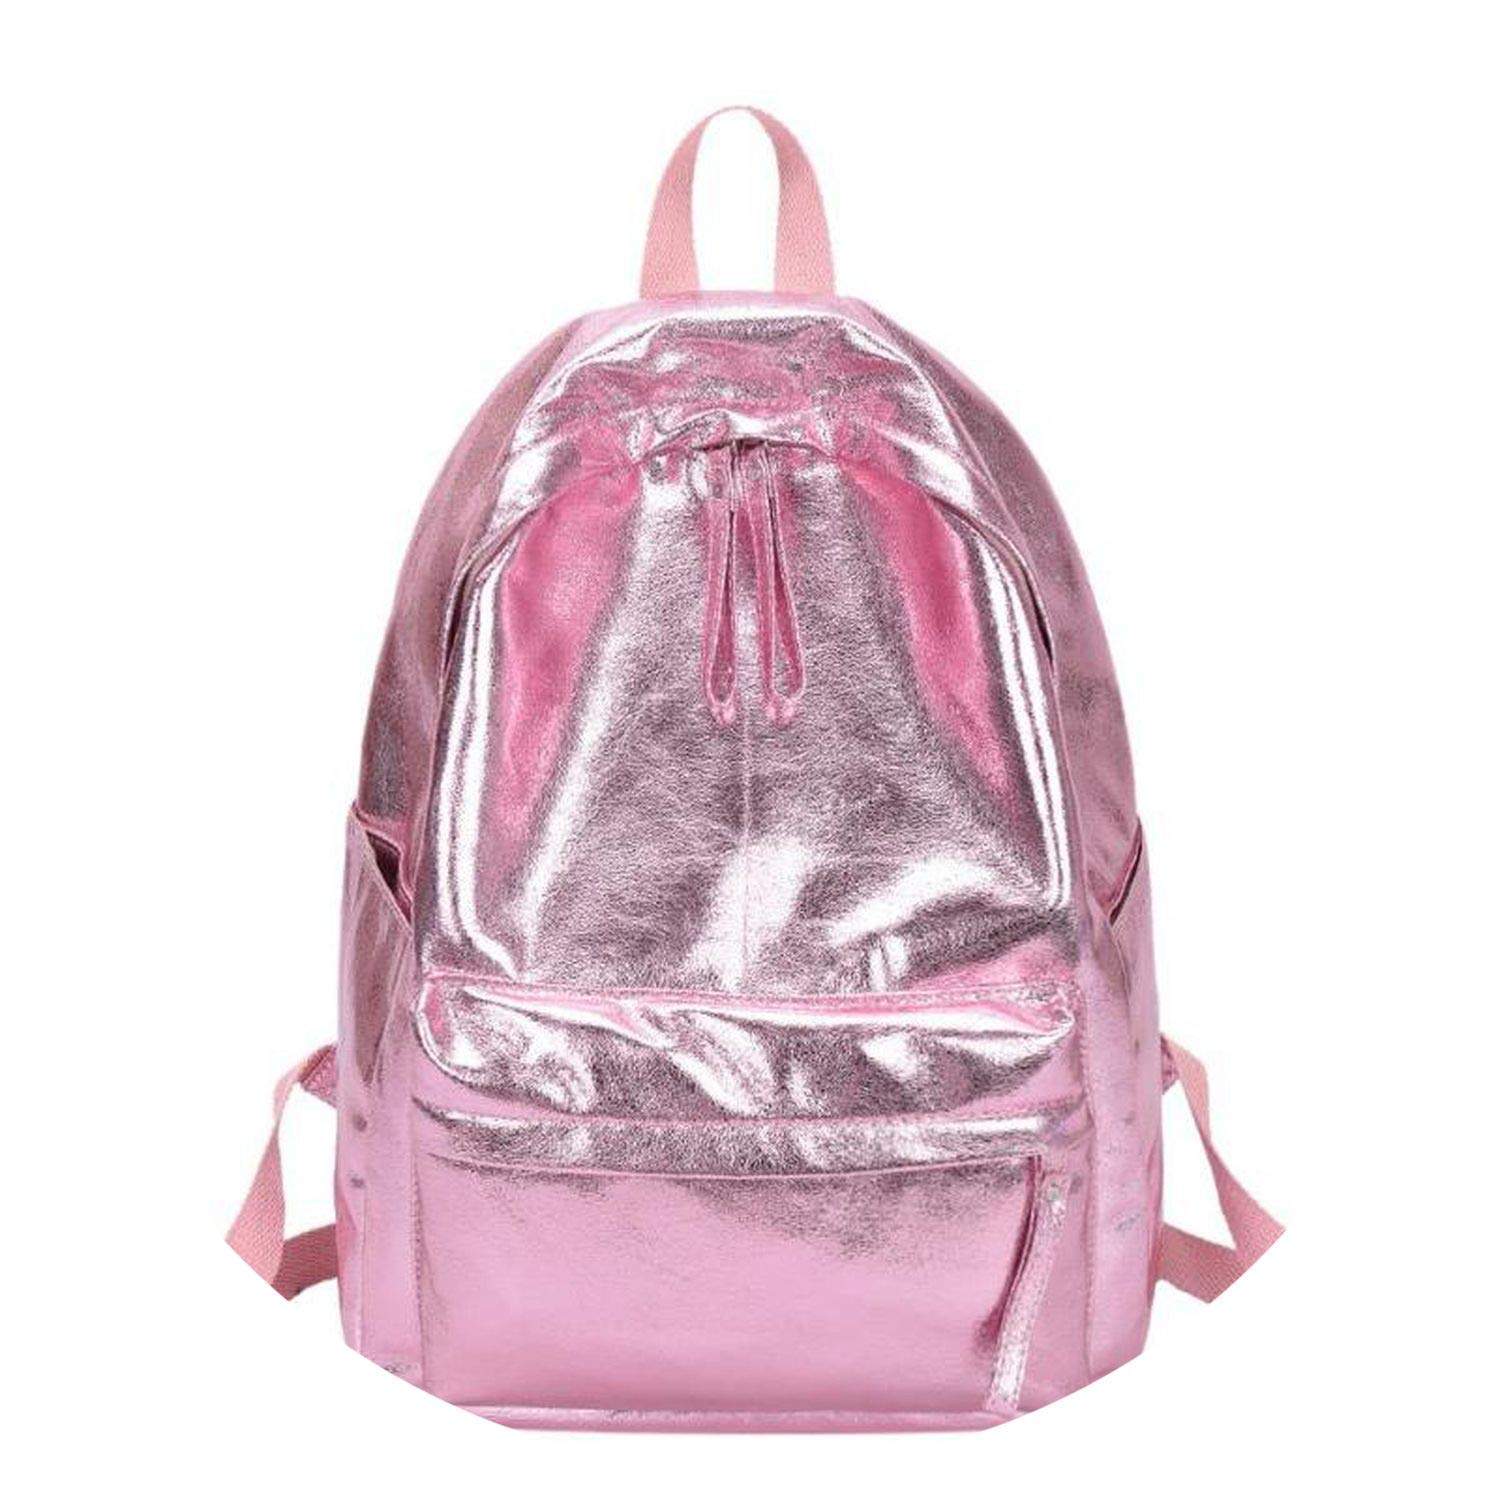 Amazon.com: on Teenager Girls Chain School Backpack PU Leather Shoulder Backpack Travel Ksack Mochilas 2018,Pink,A: Shoes